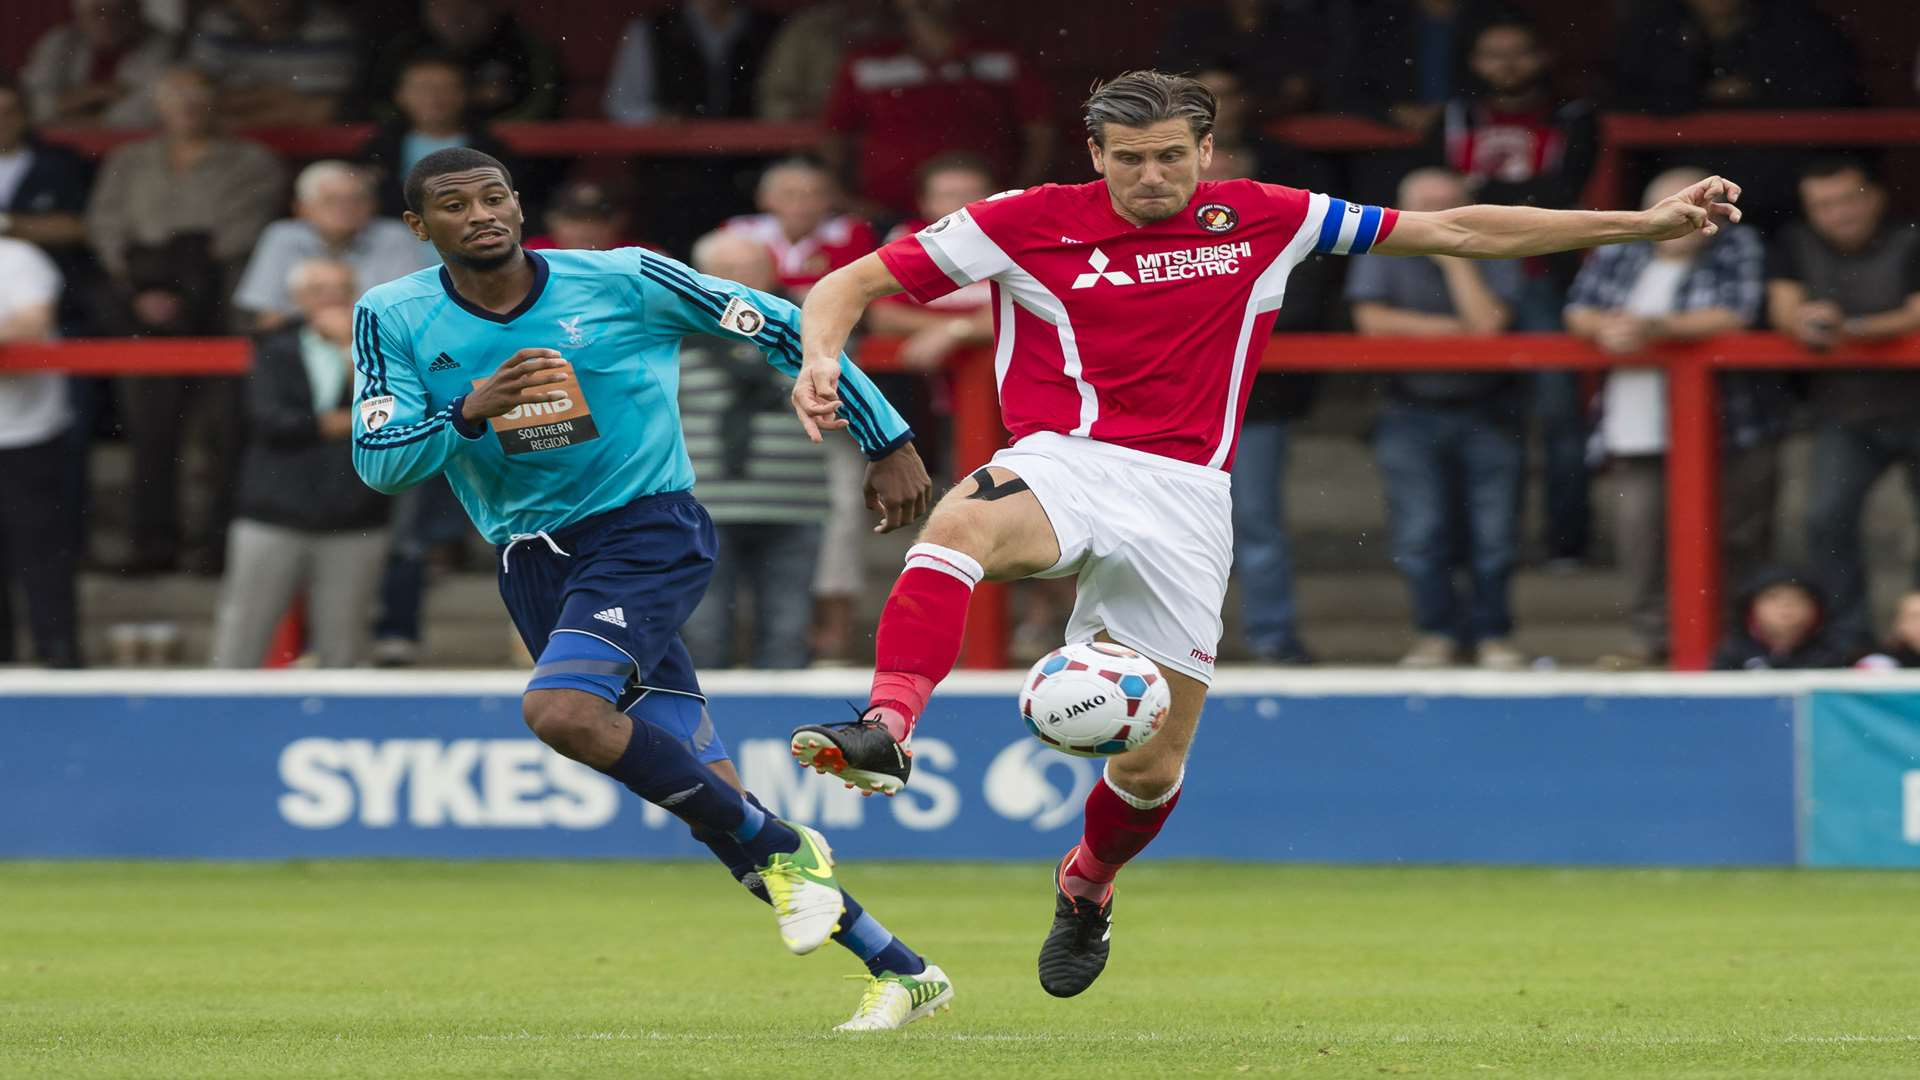 Ebbsfleet captain Tom Bonner gets to the ball ahead of Danny Mills Picture: Andy Payton